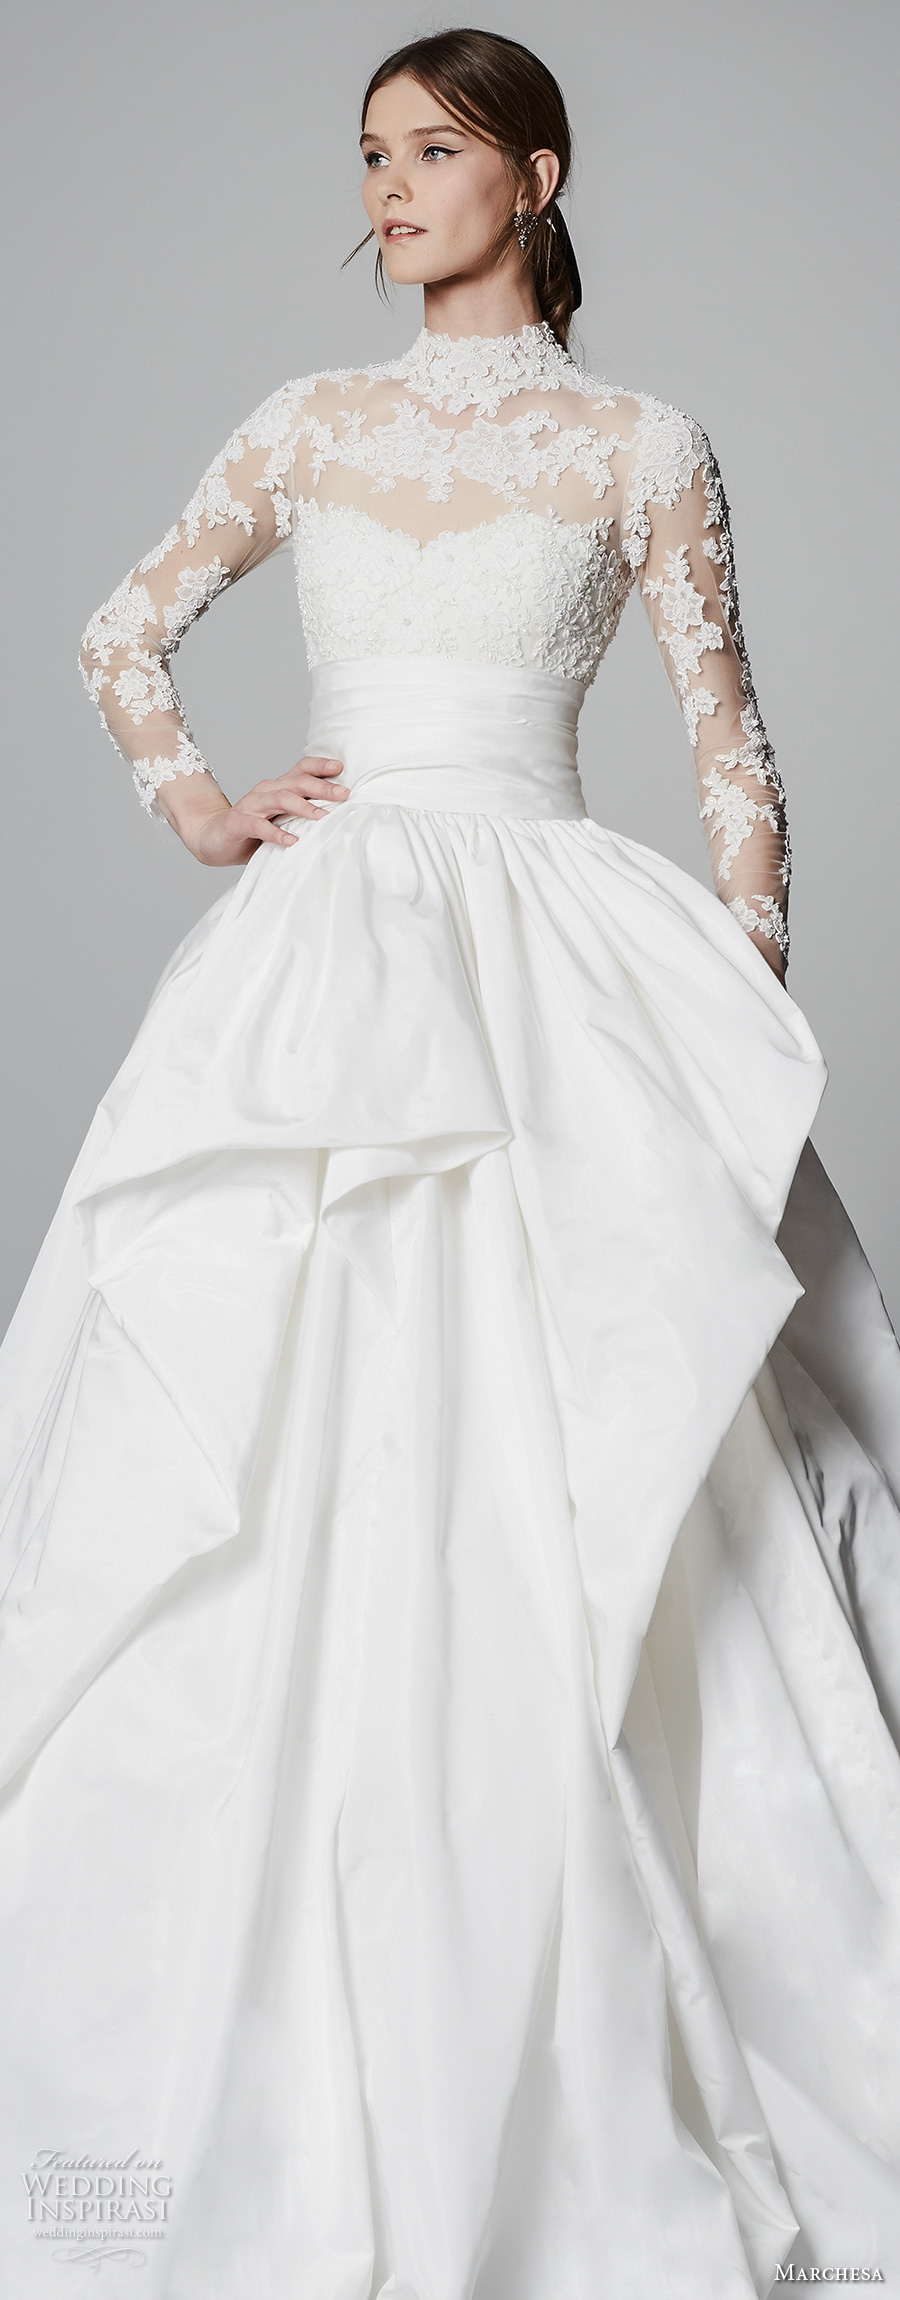 Decent Marchesa Spring 2018 Bridal Long Sleeves Illusion Neck Heart Neckline Heavily Embellished Princess Ball Gown A Line Wedding Dress Sheer Lace Back Chapel Train 11 Zv wedding dress Marchesa Wedding Dress